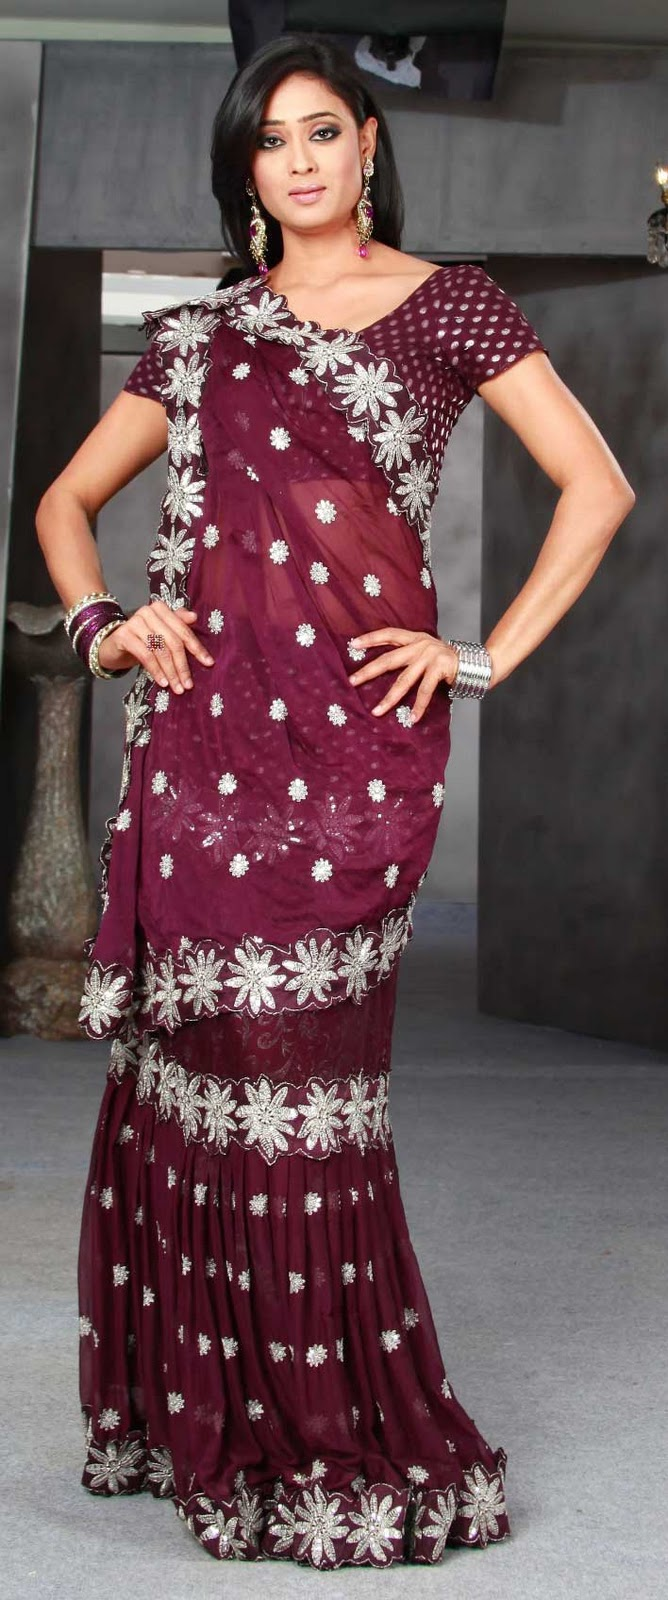 Kalazone Sarees with Price http://kalazonesilkmill.blogspot.com/2011/03/kalazone-now-has-cheapest-saree-of-just.html